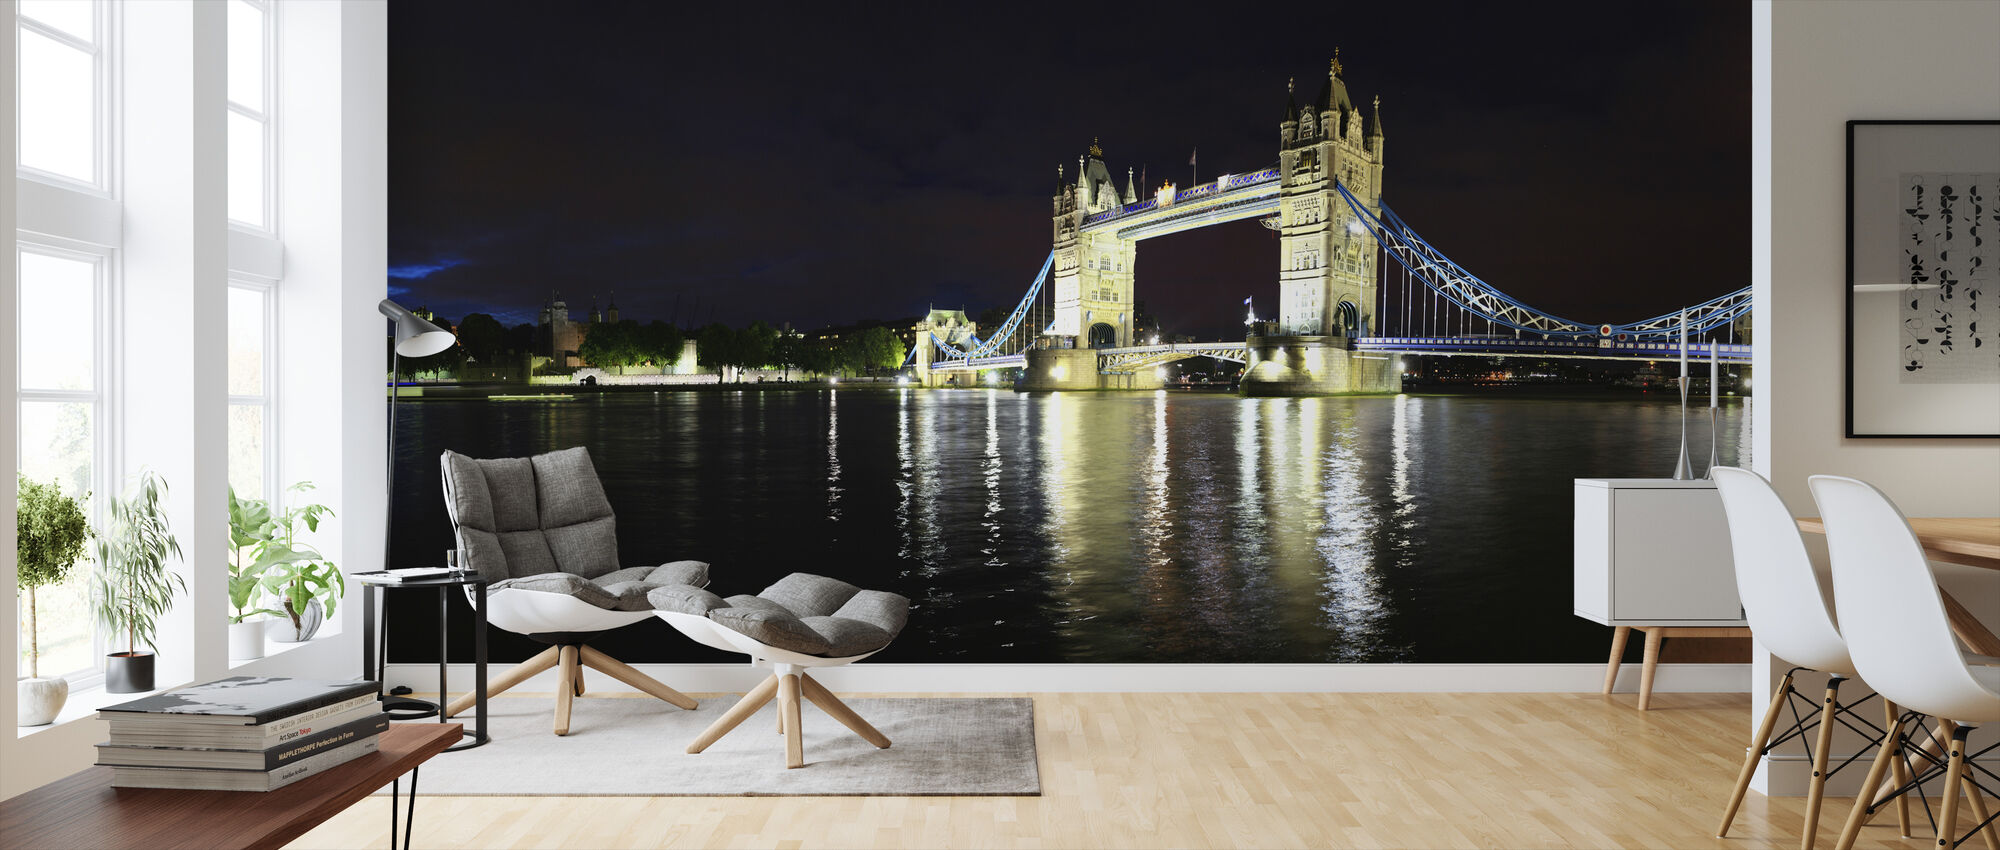 London Tower Bridge at Night - Wallpaper - Living Room